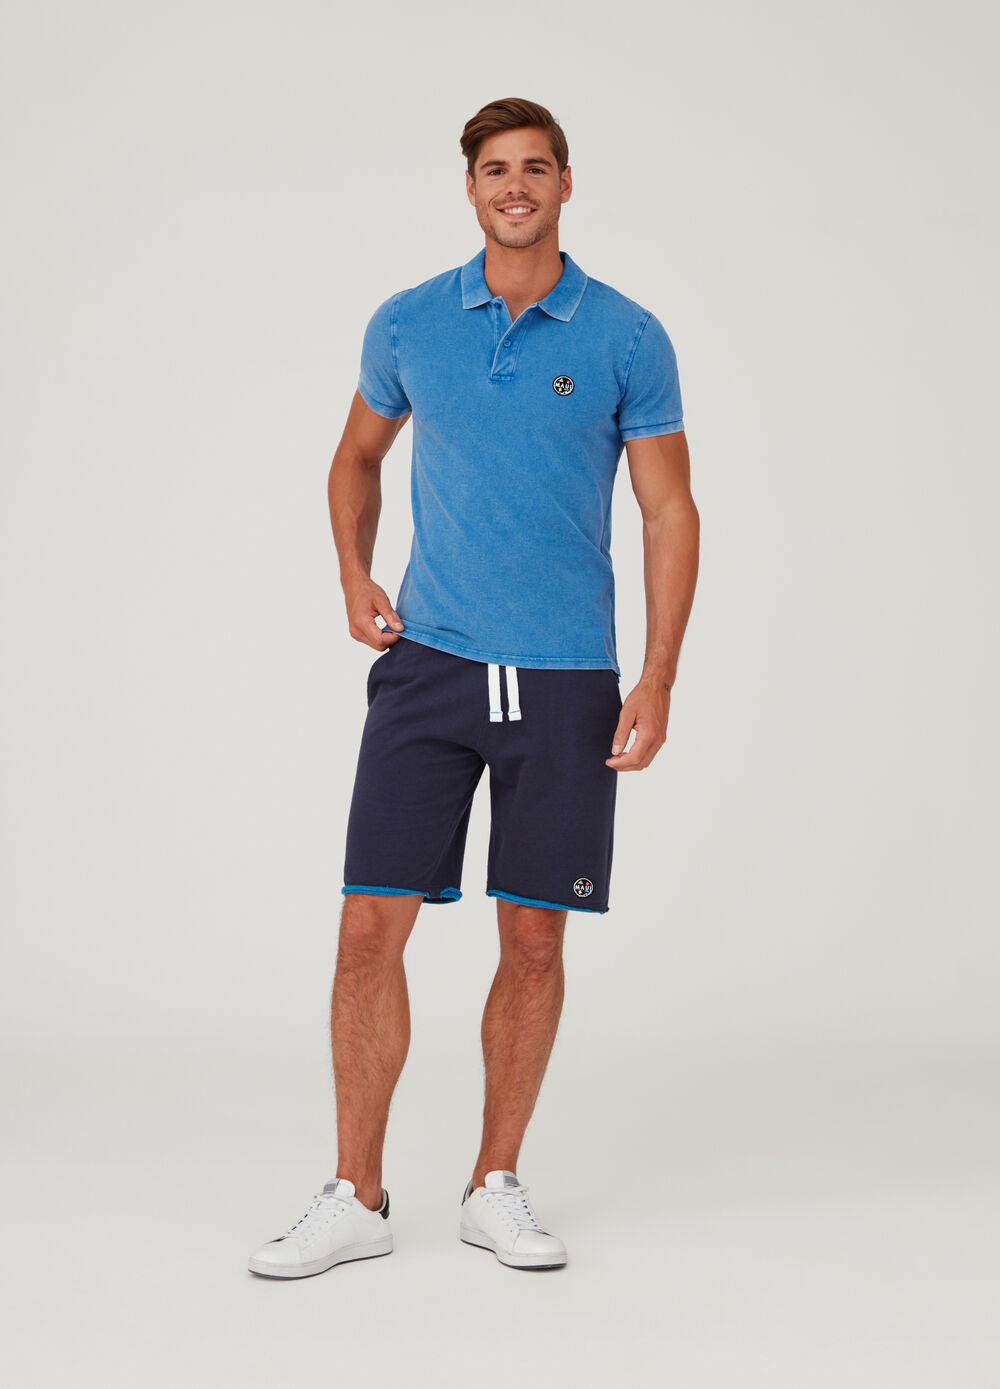 Shorts with drawstring by Maui and Sons